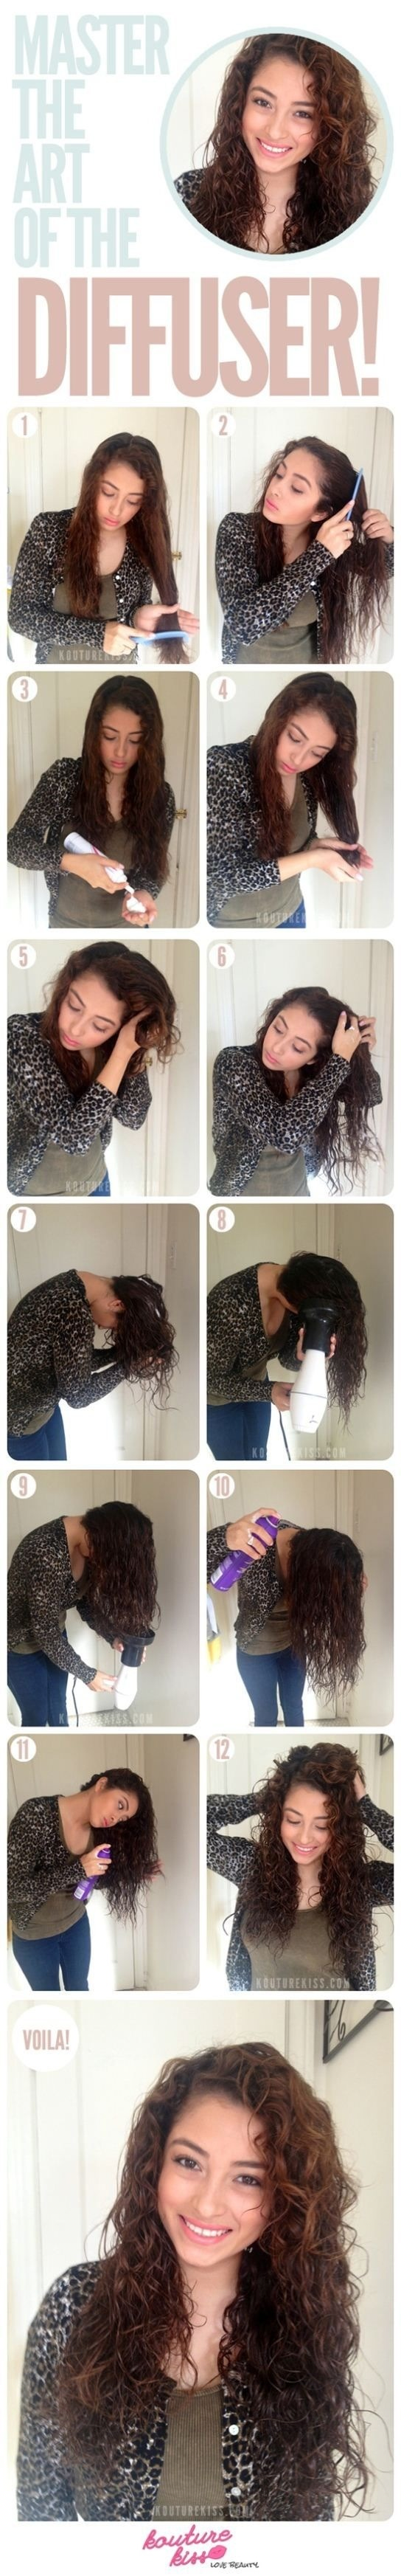 Add a little gel after the mousse and get a longer lasting hold, if you don't have a diffuser, just keep the blow dryer far away  on a low warm setting and just keep scrunching! 😊